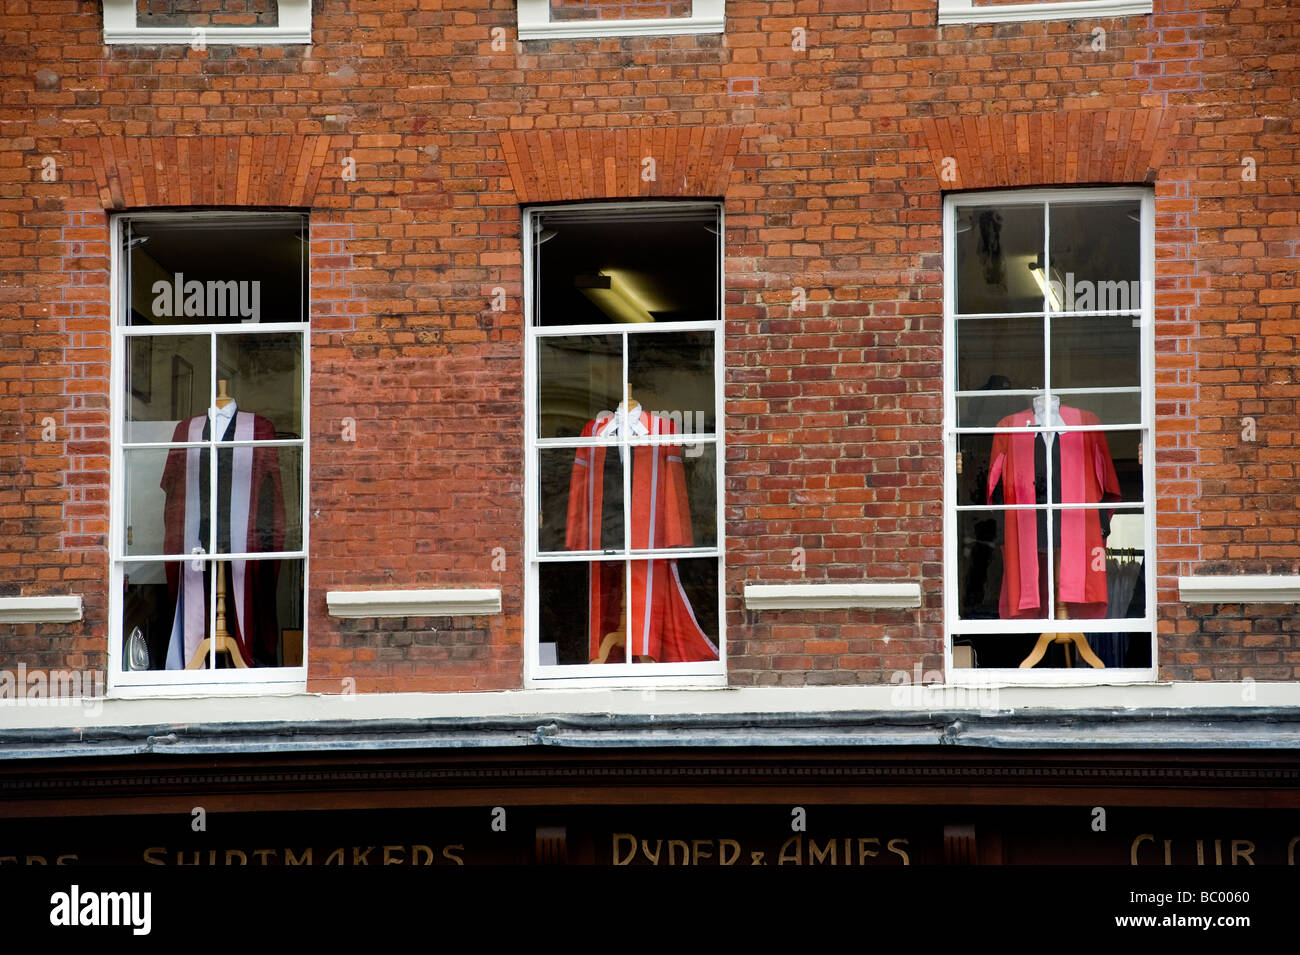 Cambridge university education elite robes graduate graduation Britain learn pomp british typical old - Stock Image